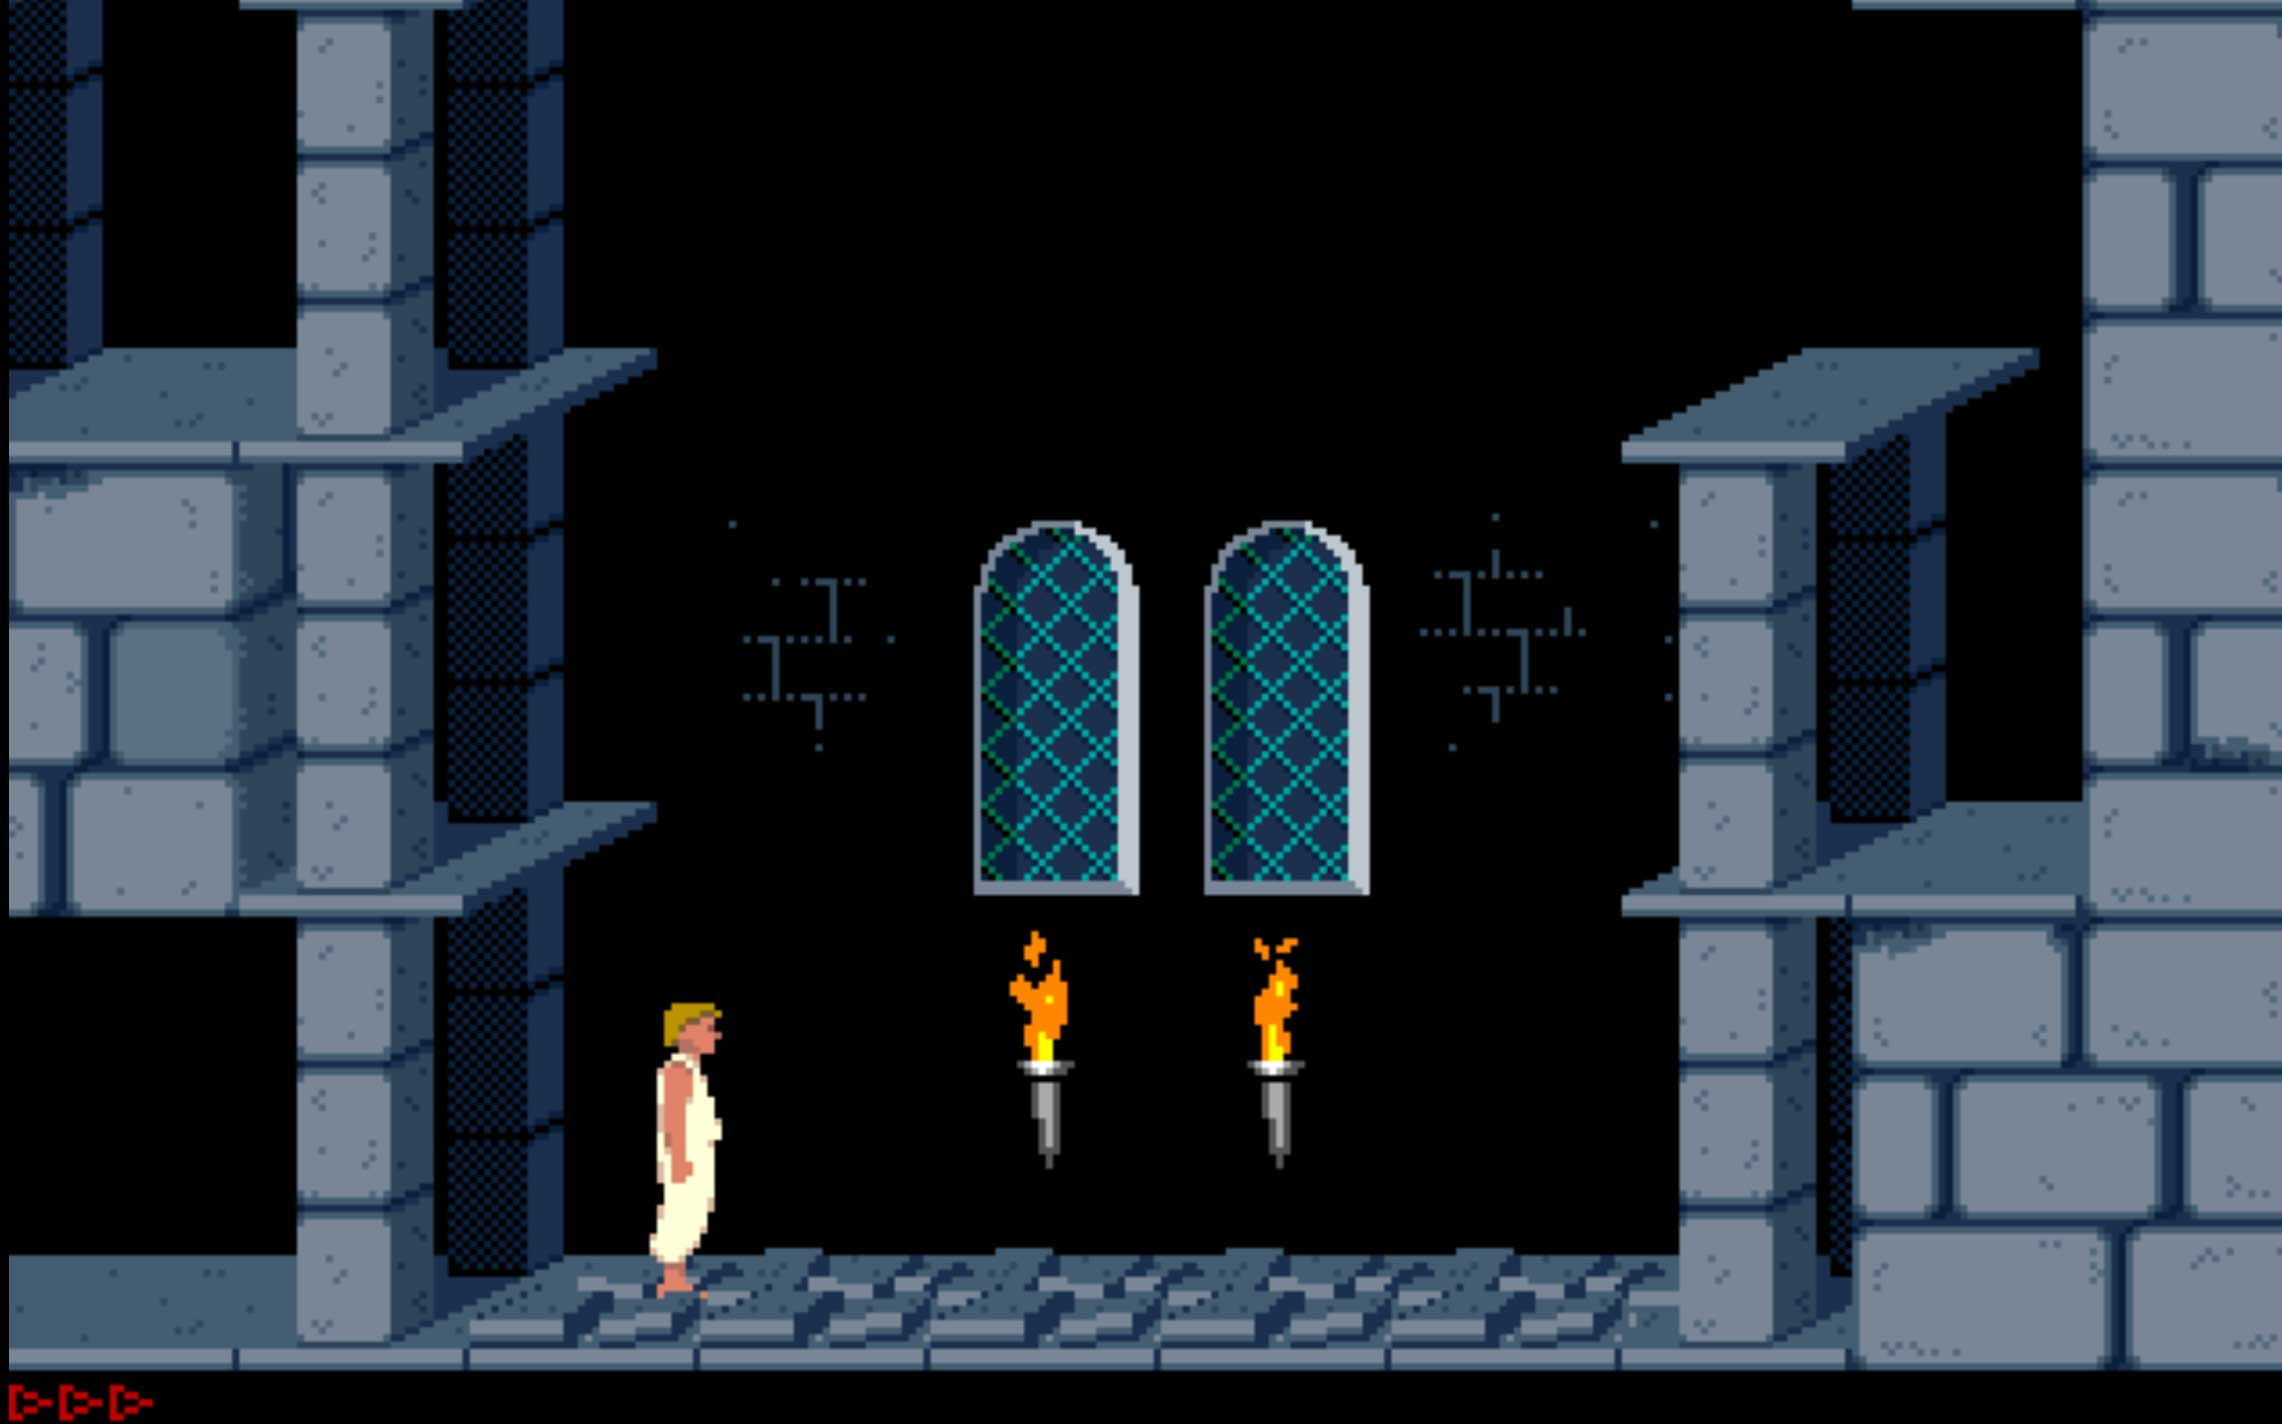 "<a href=""https://archive.org/details/msdos_4D_Prince_of_Persia_1994"" target=""_blank""><strong>4D Prince of Persia (1994)</strong> </a>                                                                      Children of the 1990s will fondly recall this run-and-jump platformer as a top-notch adventure game, with great graphics and gameplay — and it has infinite lives. Score!"